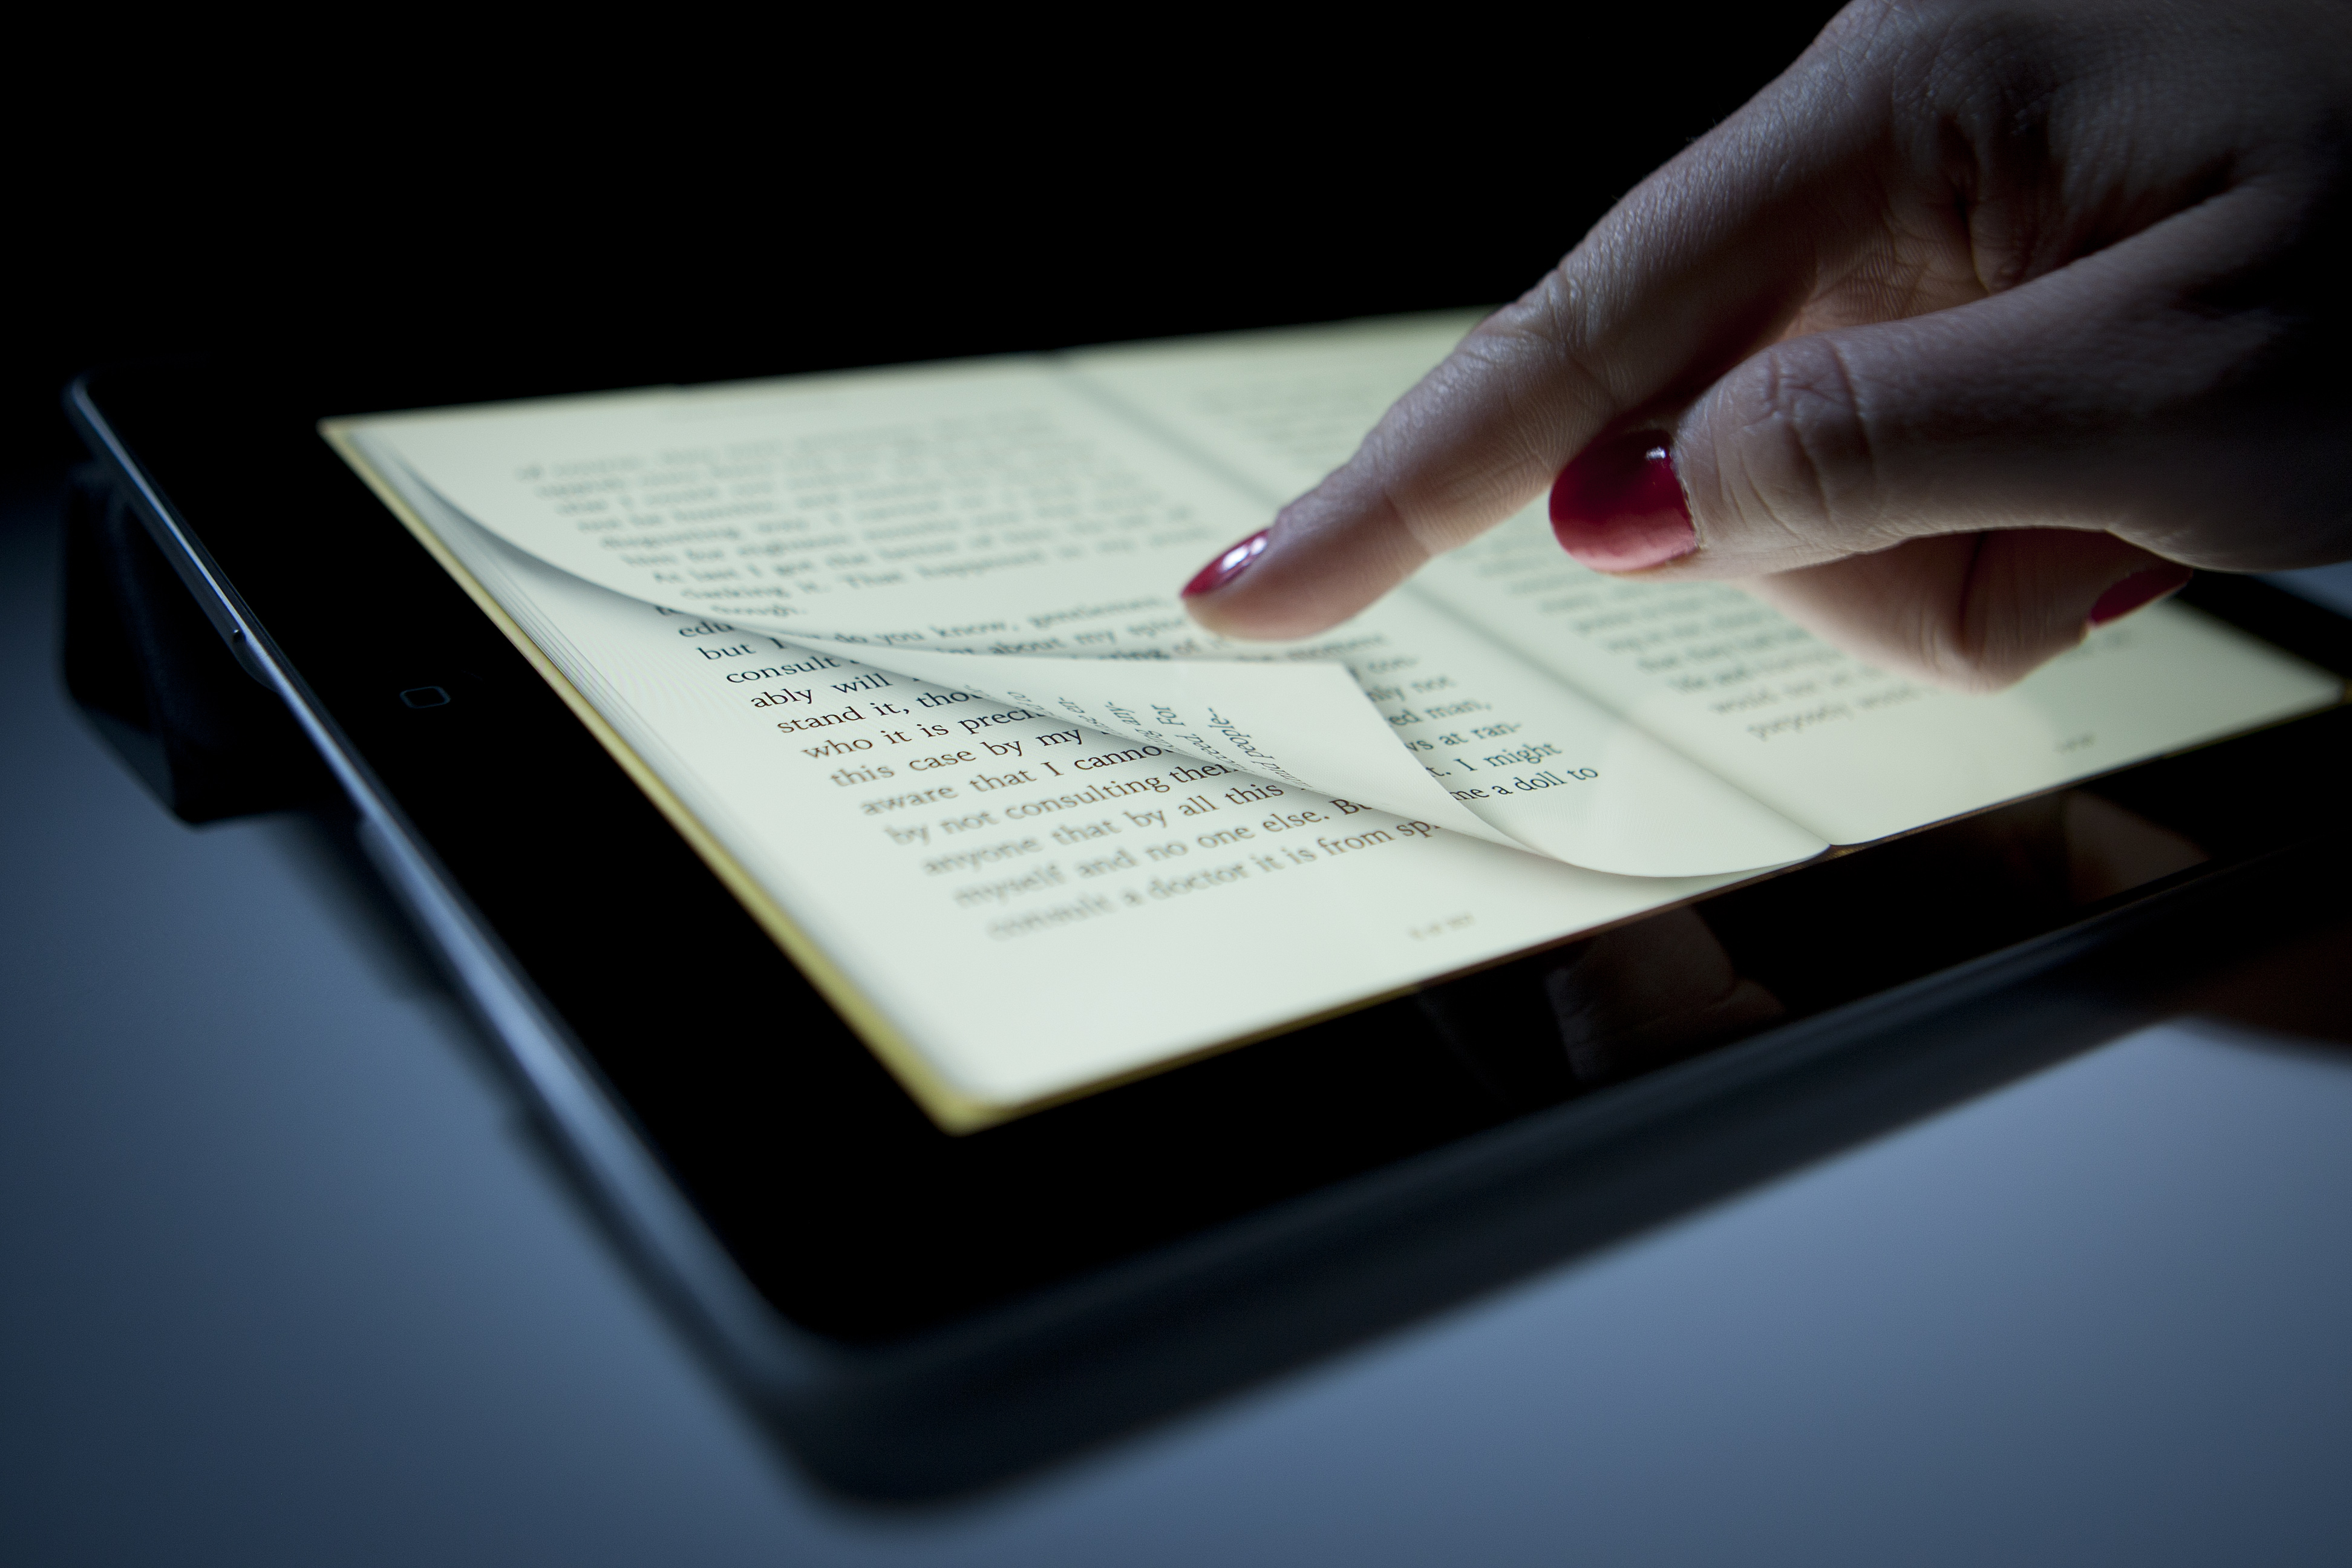 Woman reading on a digital device